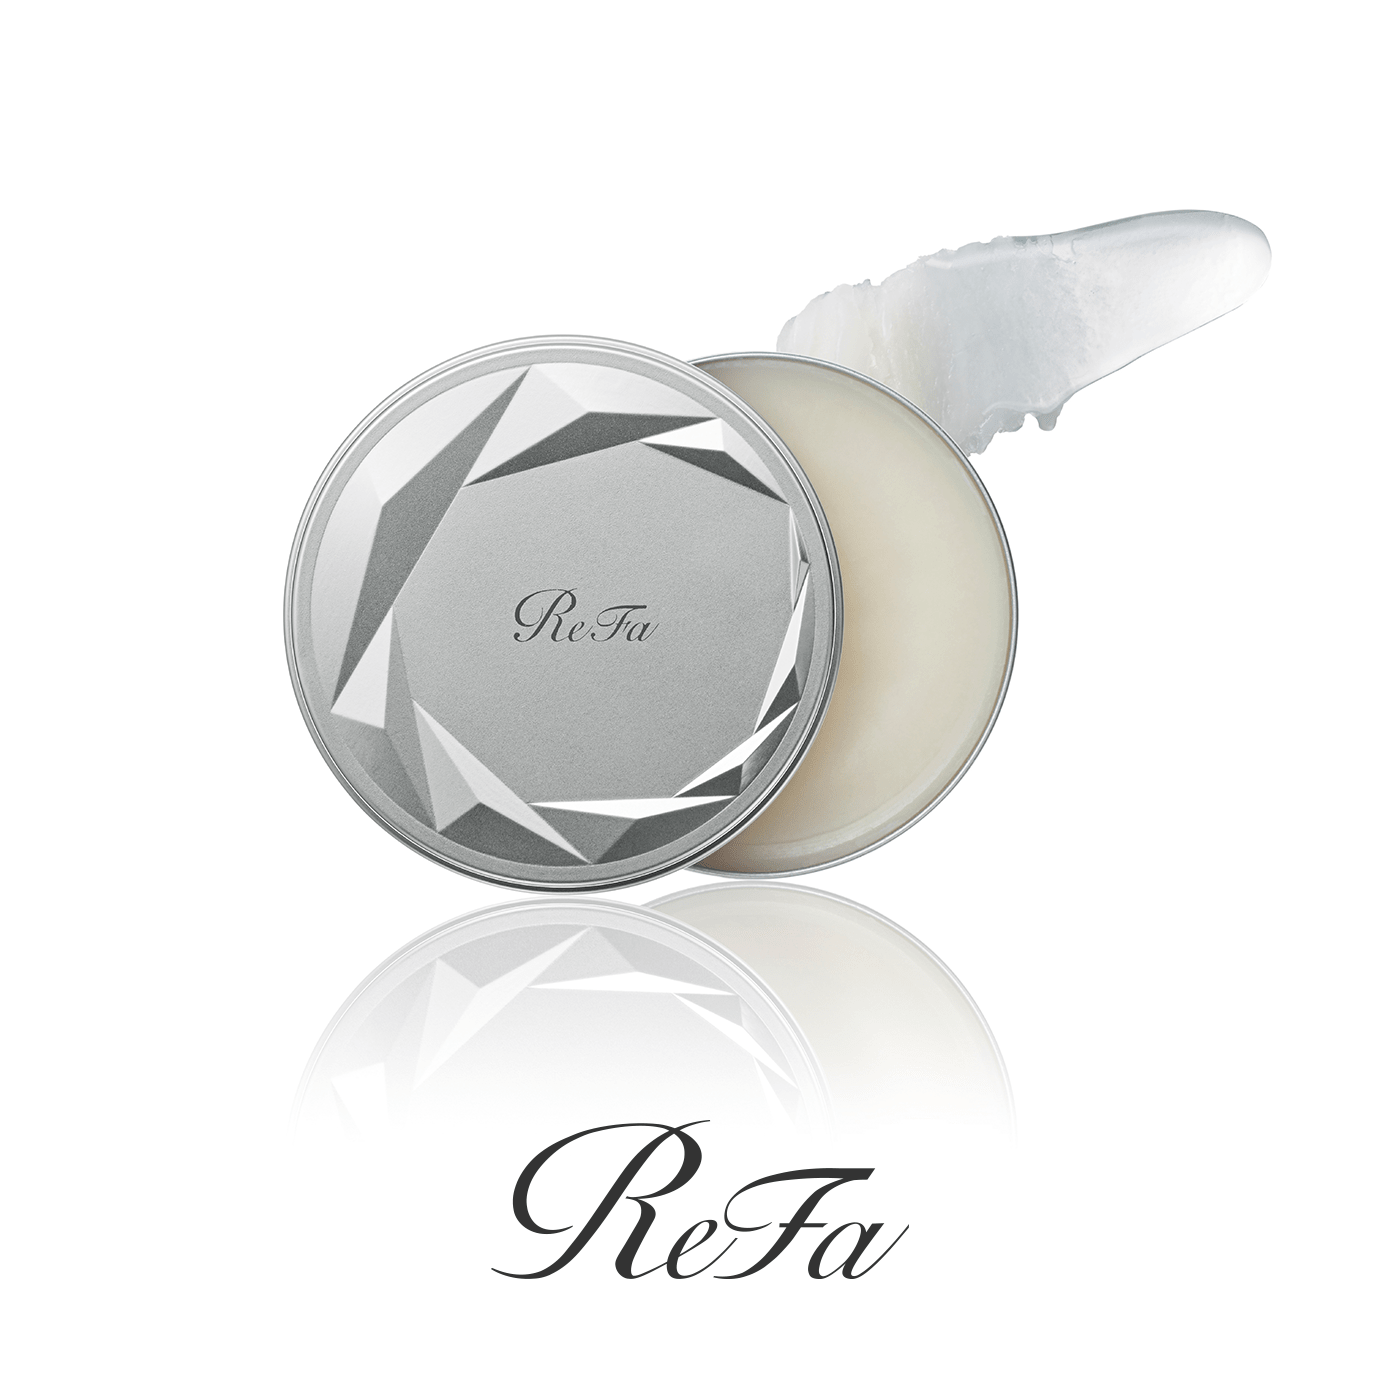 Introducing a cleansing balm for a sensational cleansing massage that relaxes and comforts your skin.